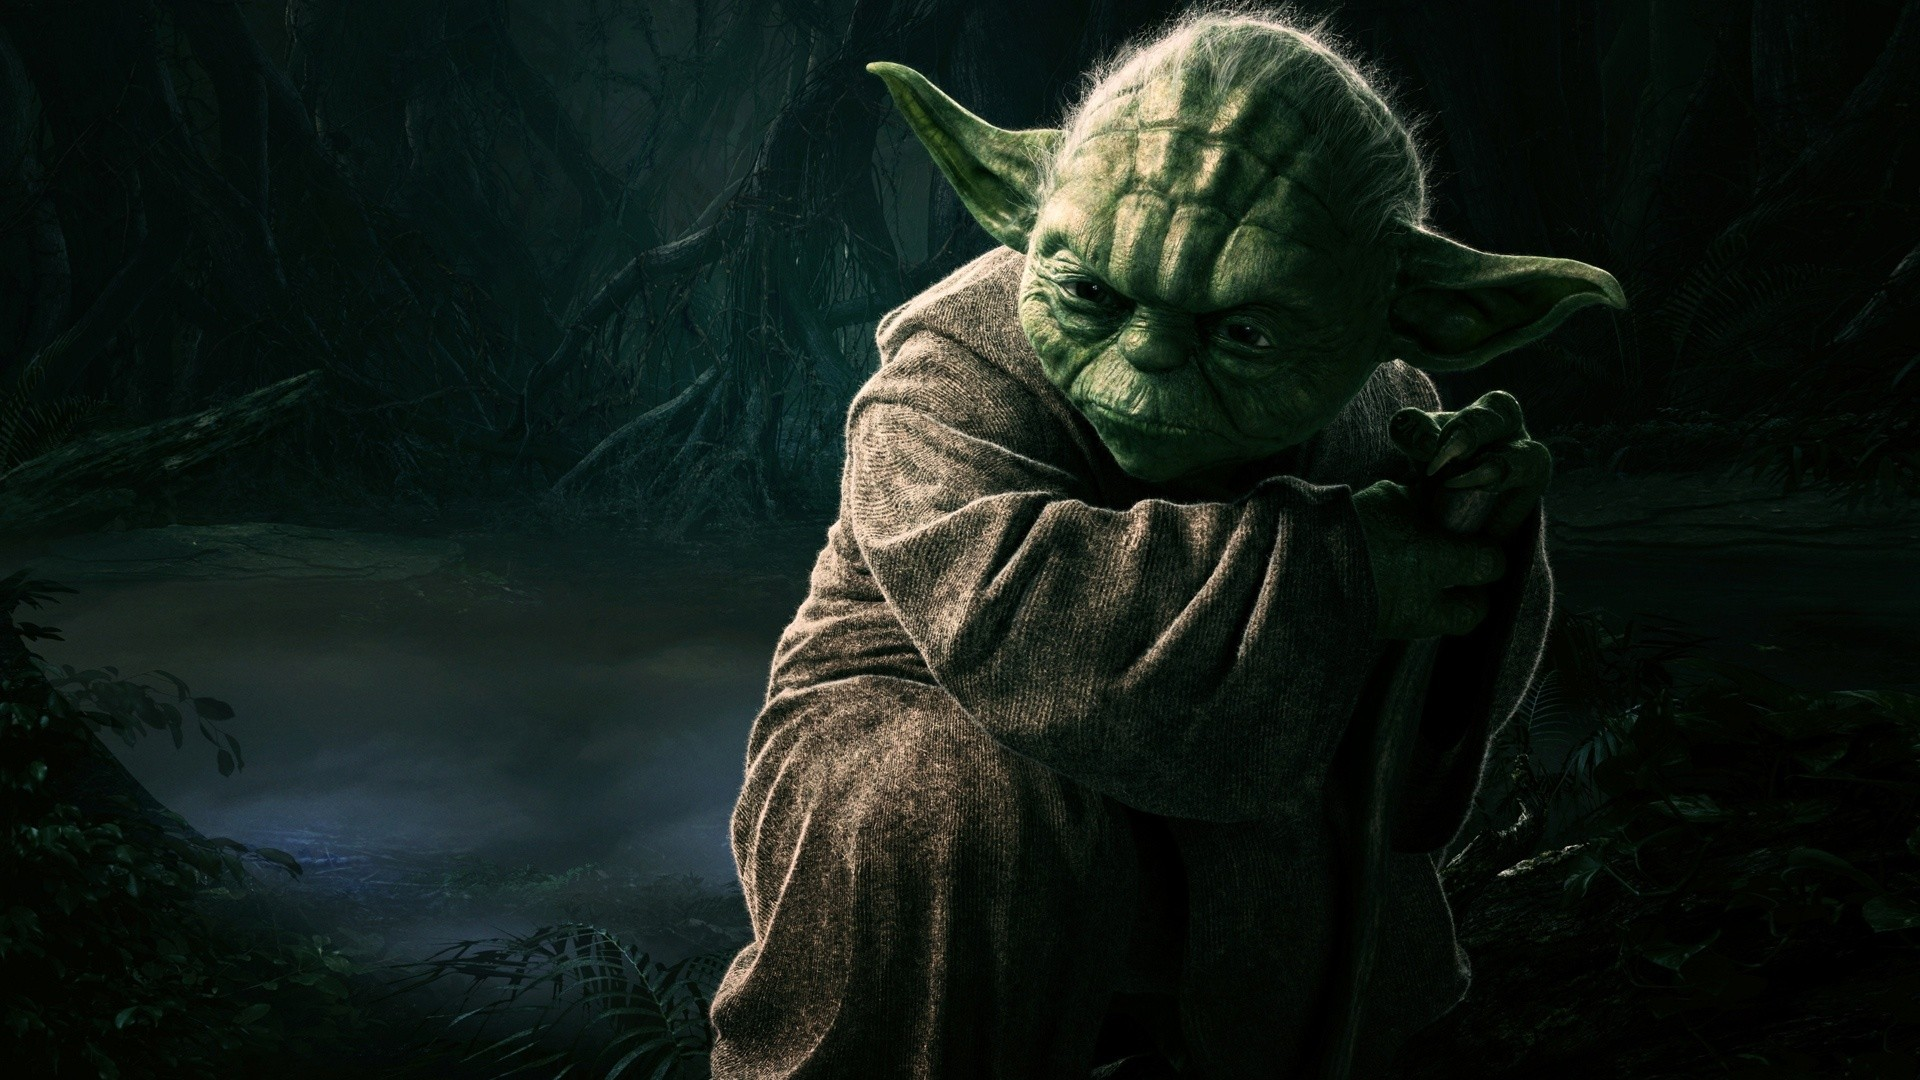 Yoda Fire Hd 1080p Wallpaper Wallpaper